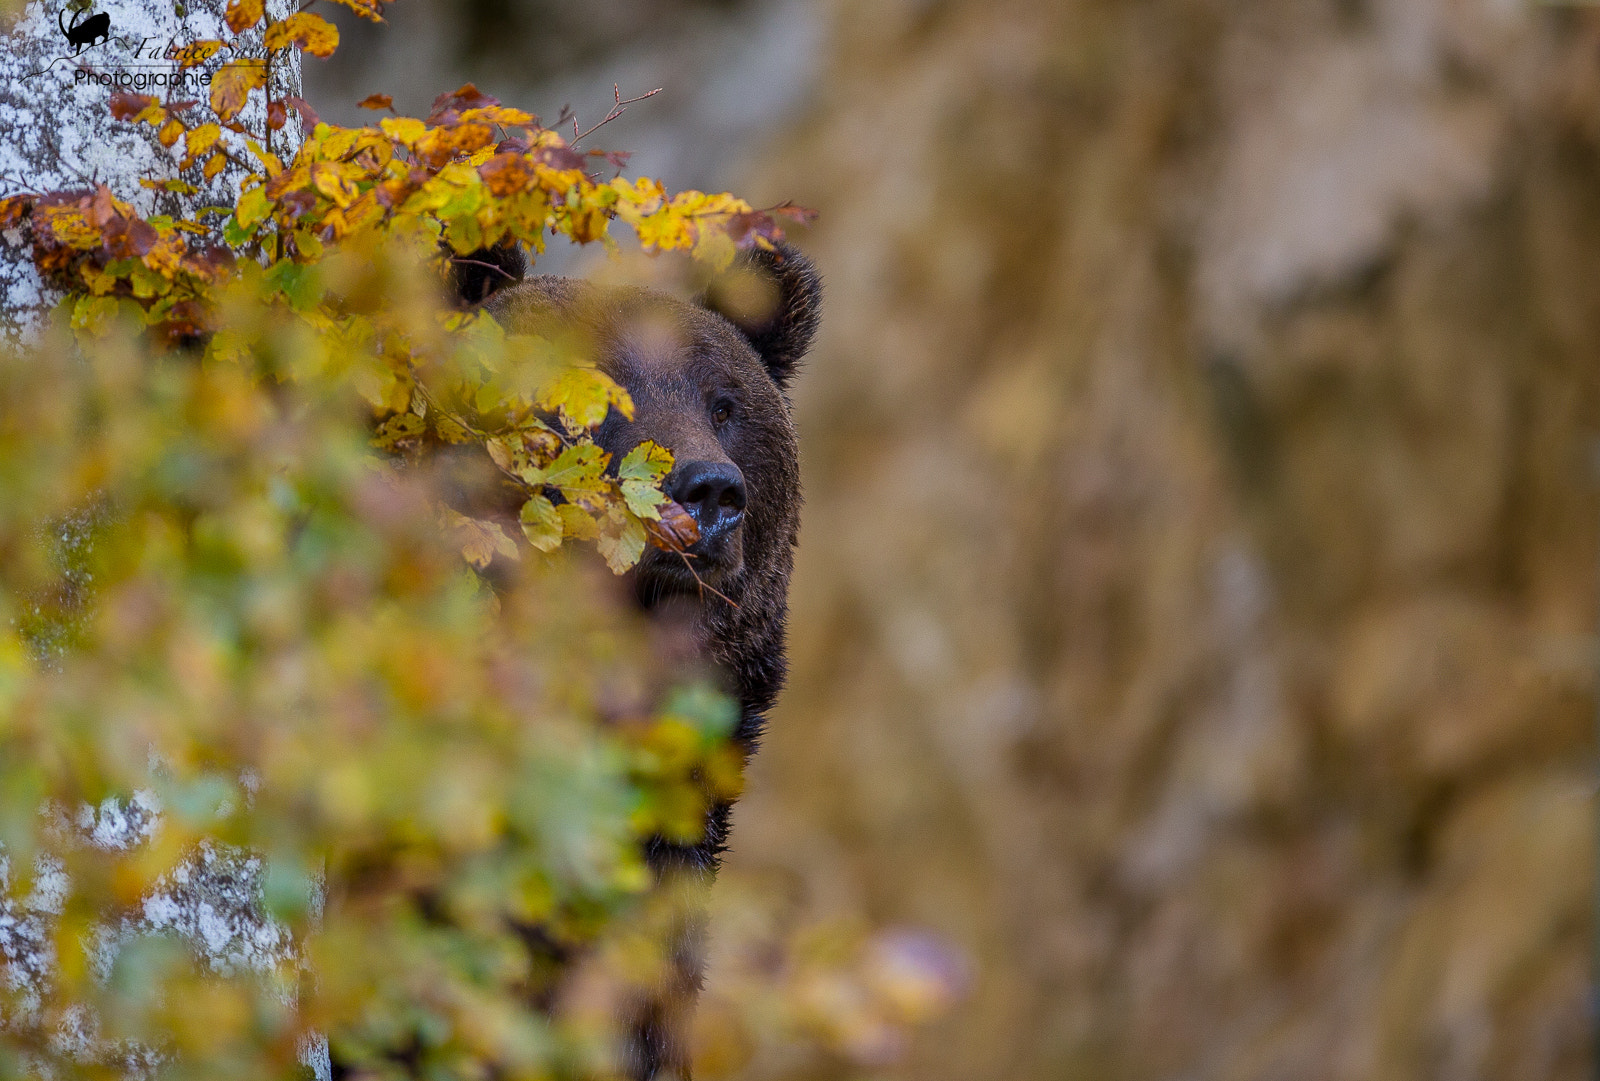 Photograph bears ours brun by Fabrice Savary  on 500px